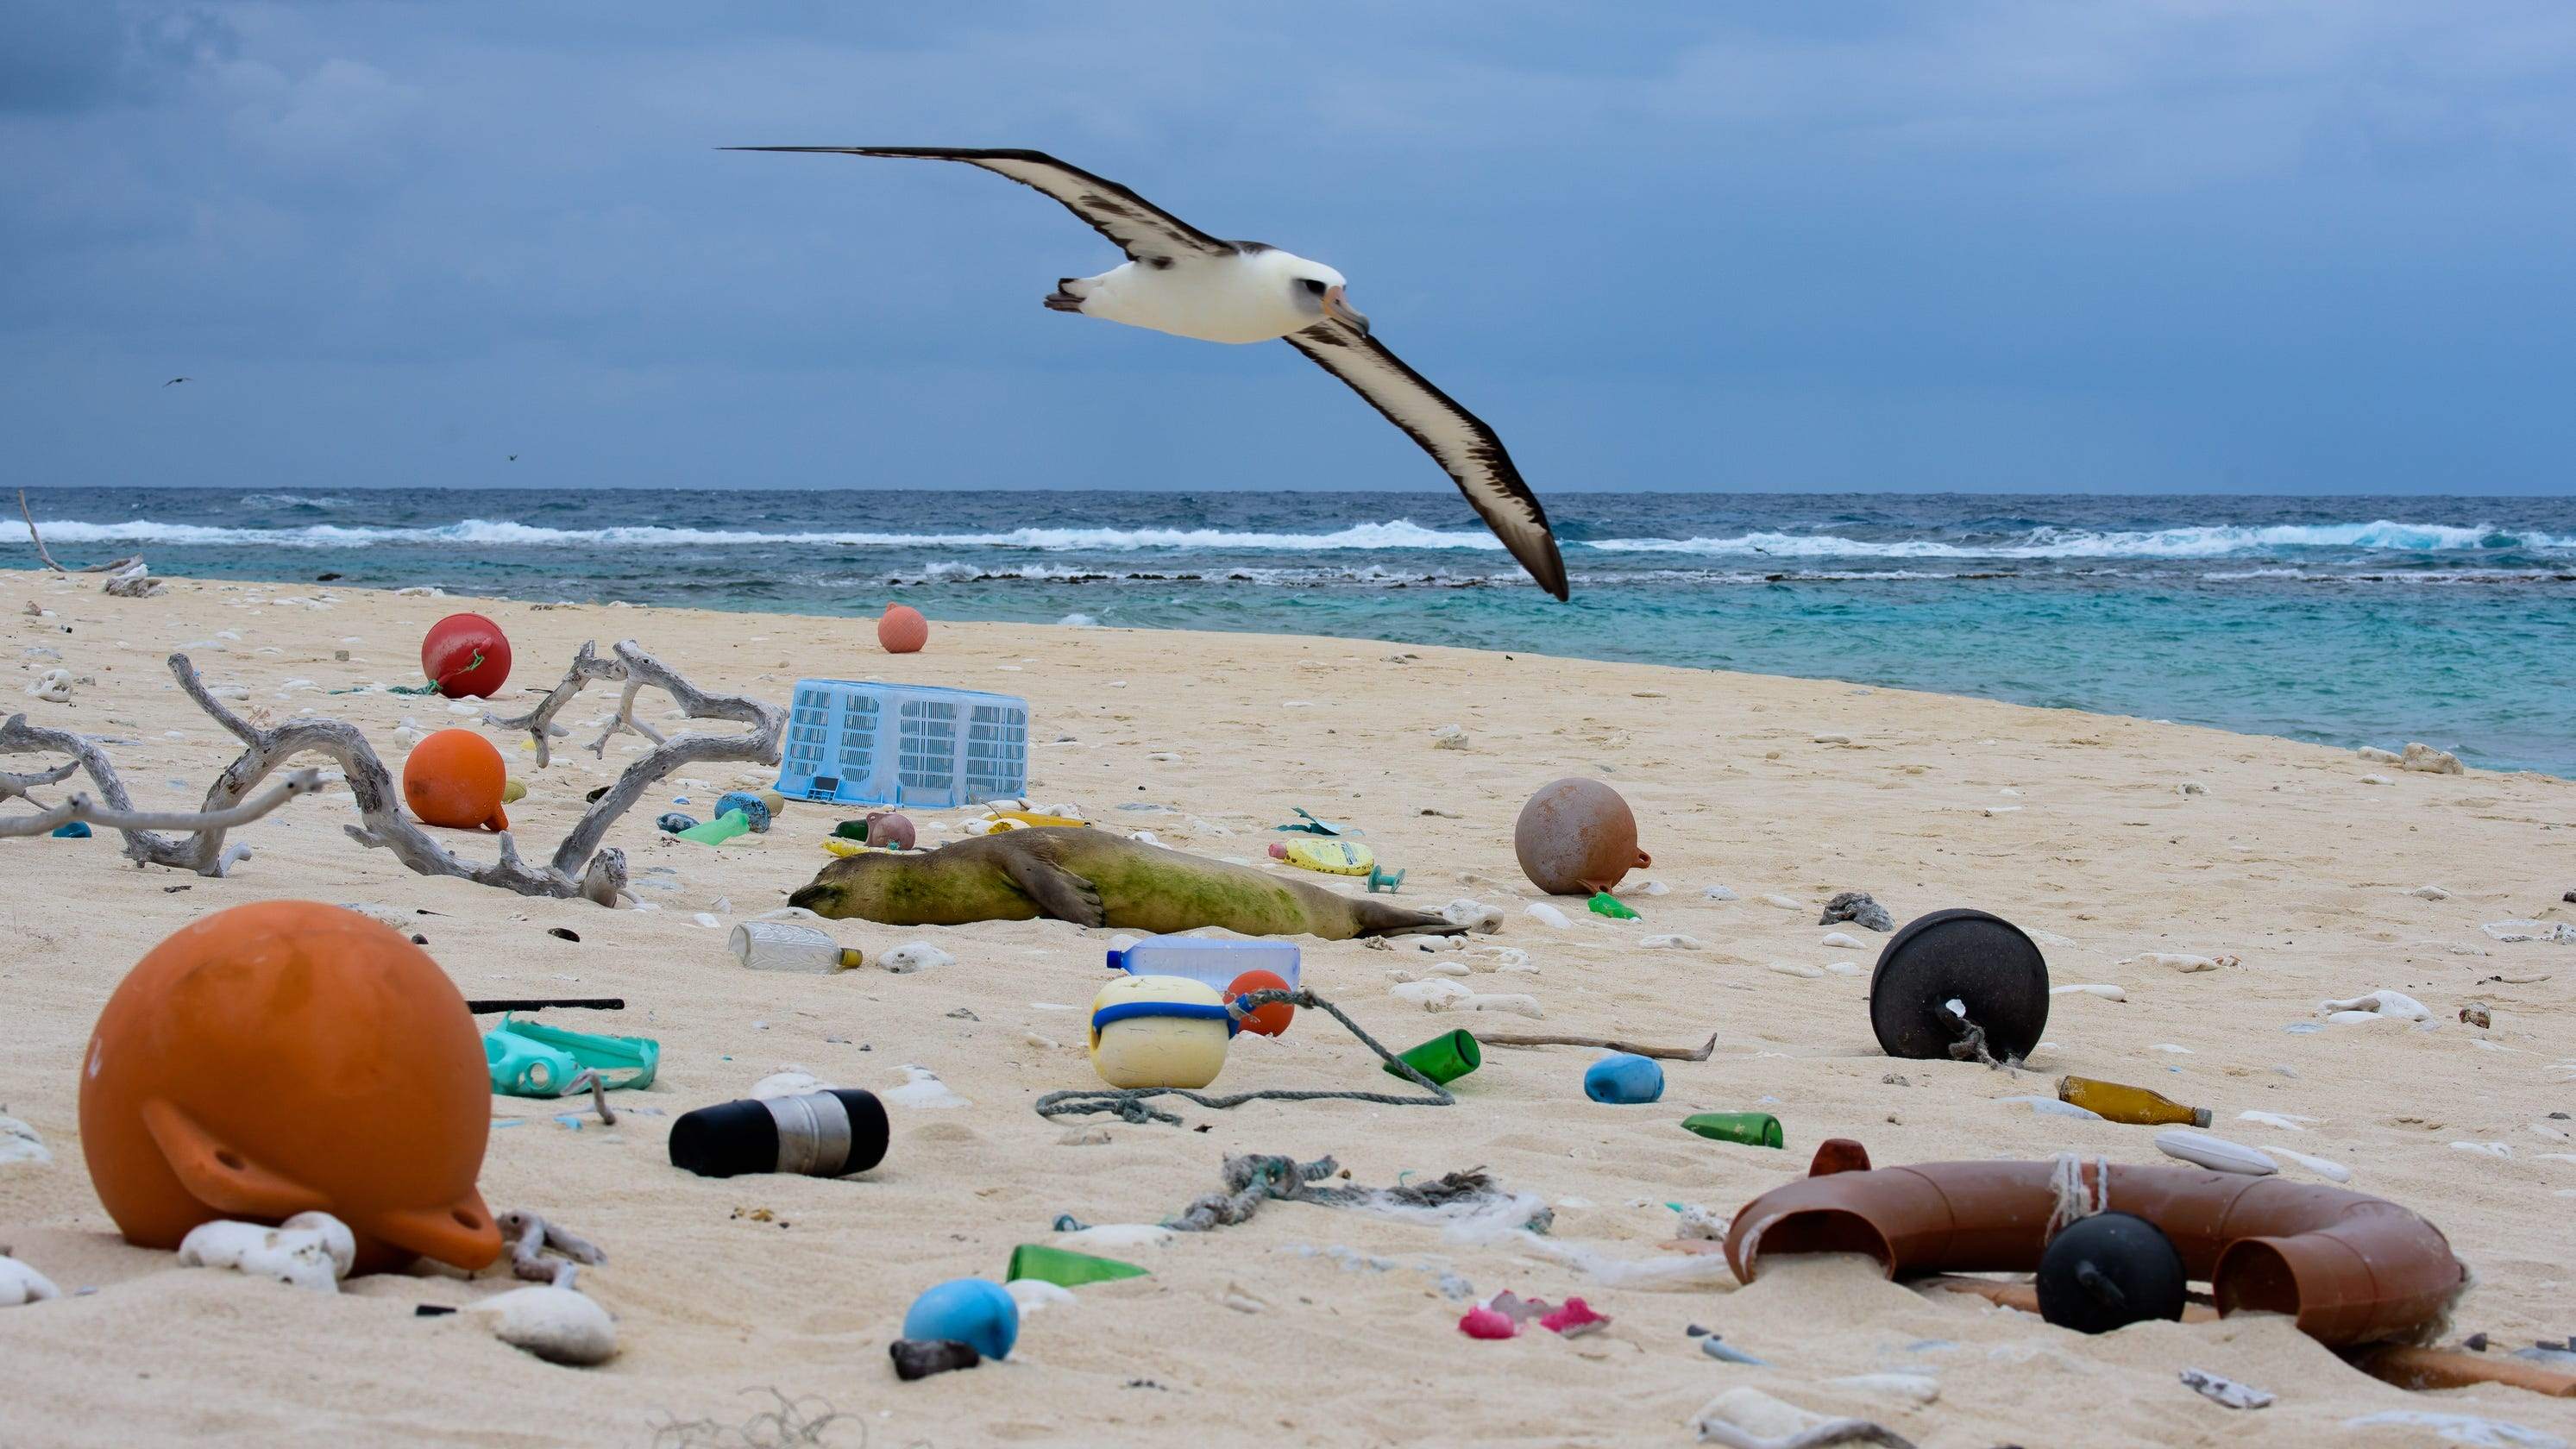 'Choked, Strangled, Drowned': Report lays out severity of plastic harming endangered marine life